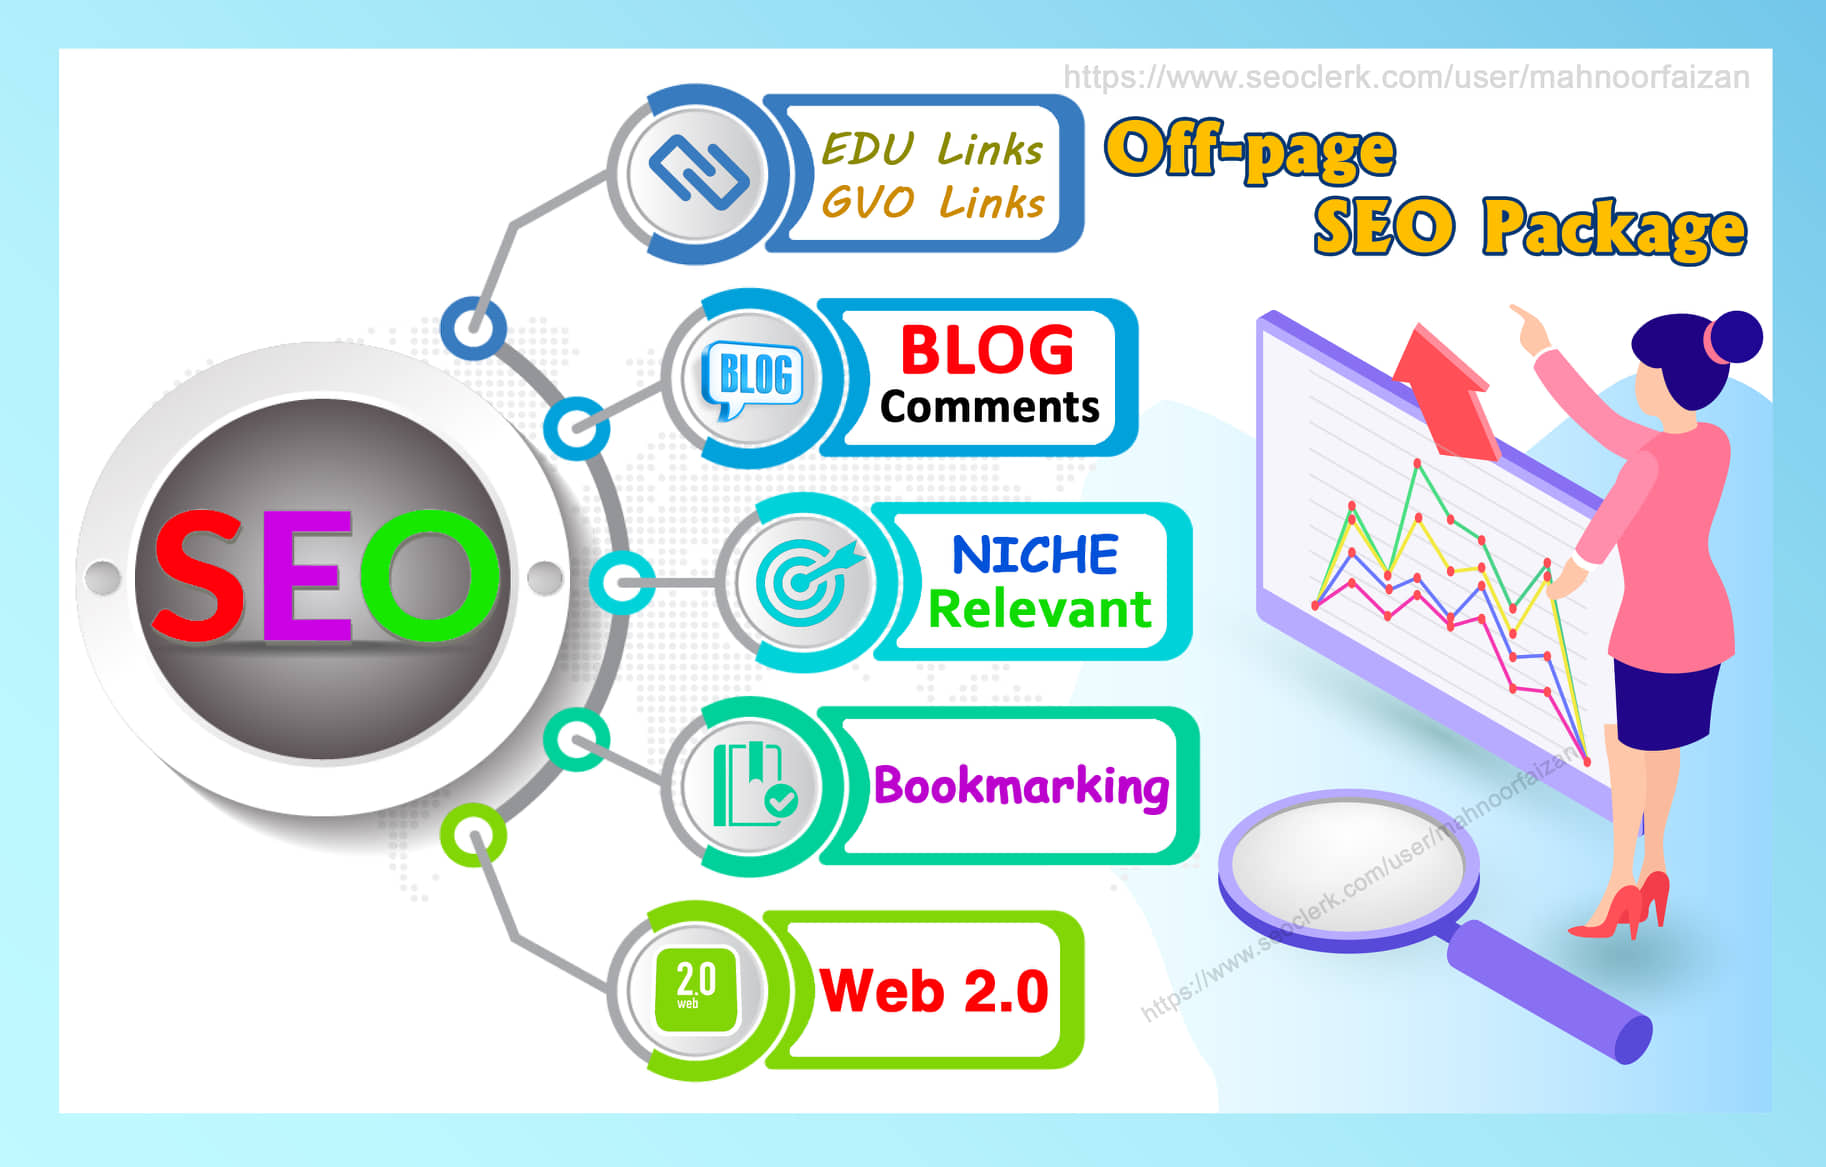 I will do weekly seo offpage SEO srevices